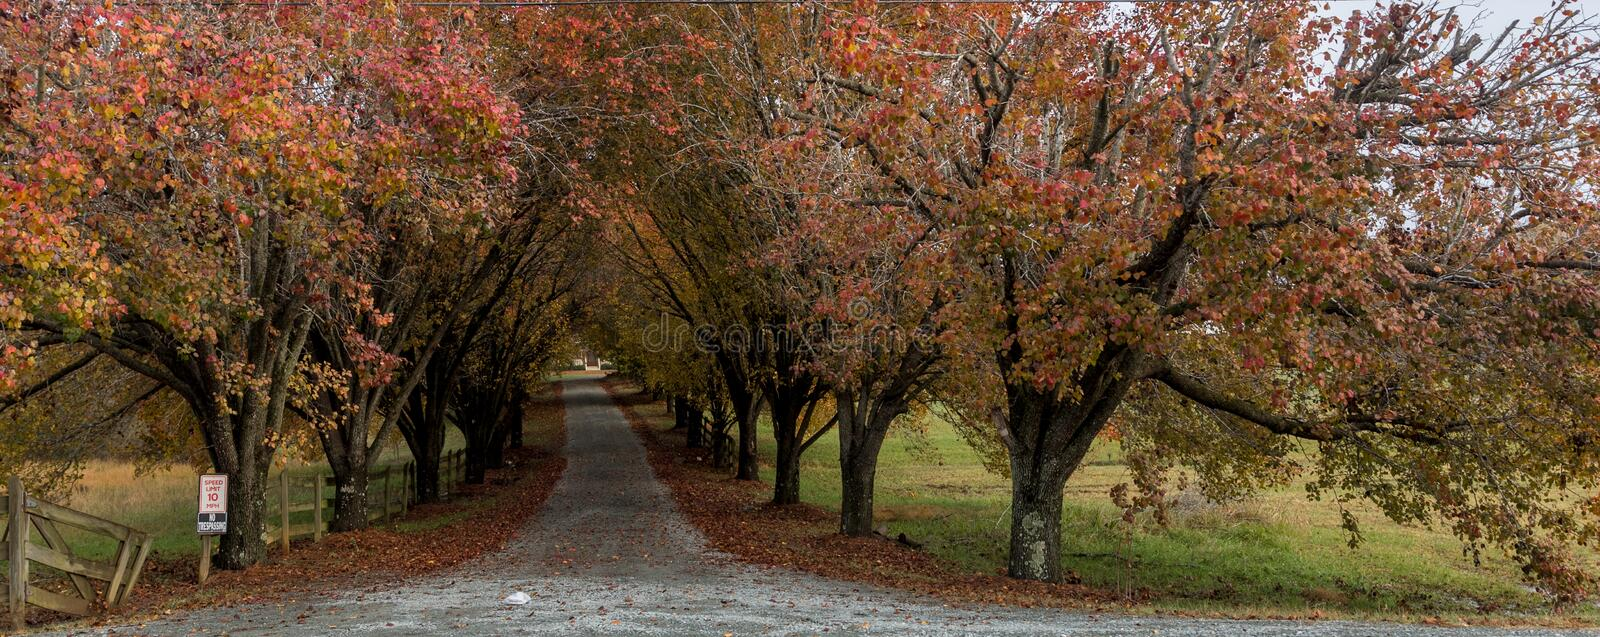 Colorful trees lining coutry lane. Colorful trees and wooden fence lining coutry lane royalty free stock photography